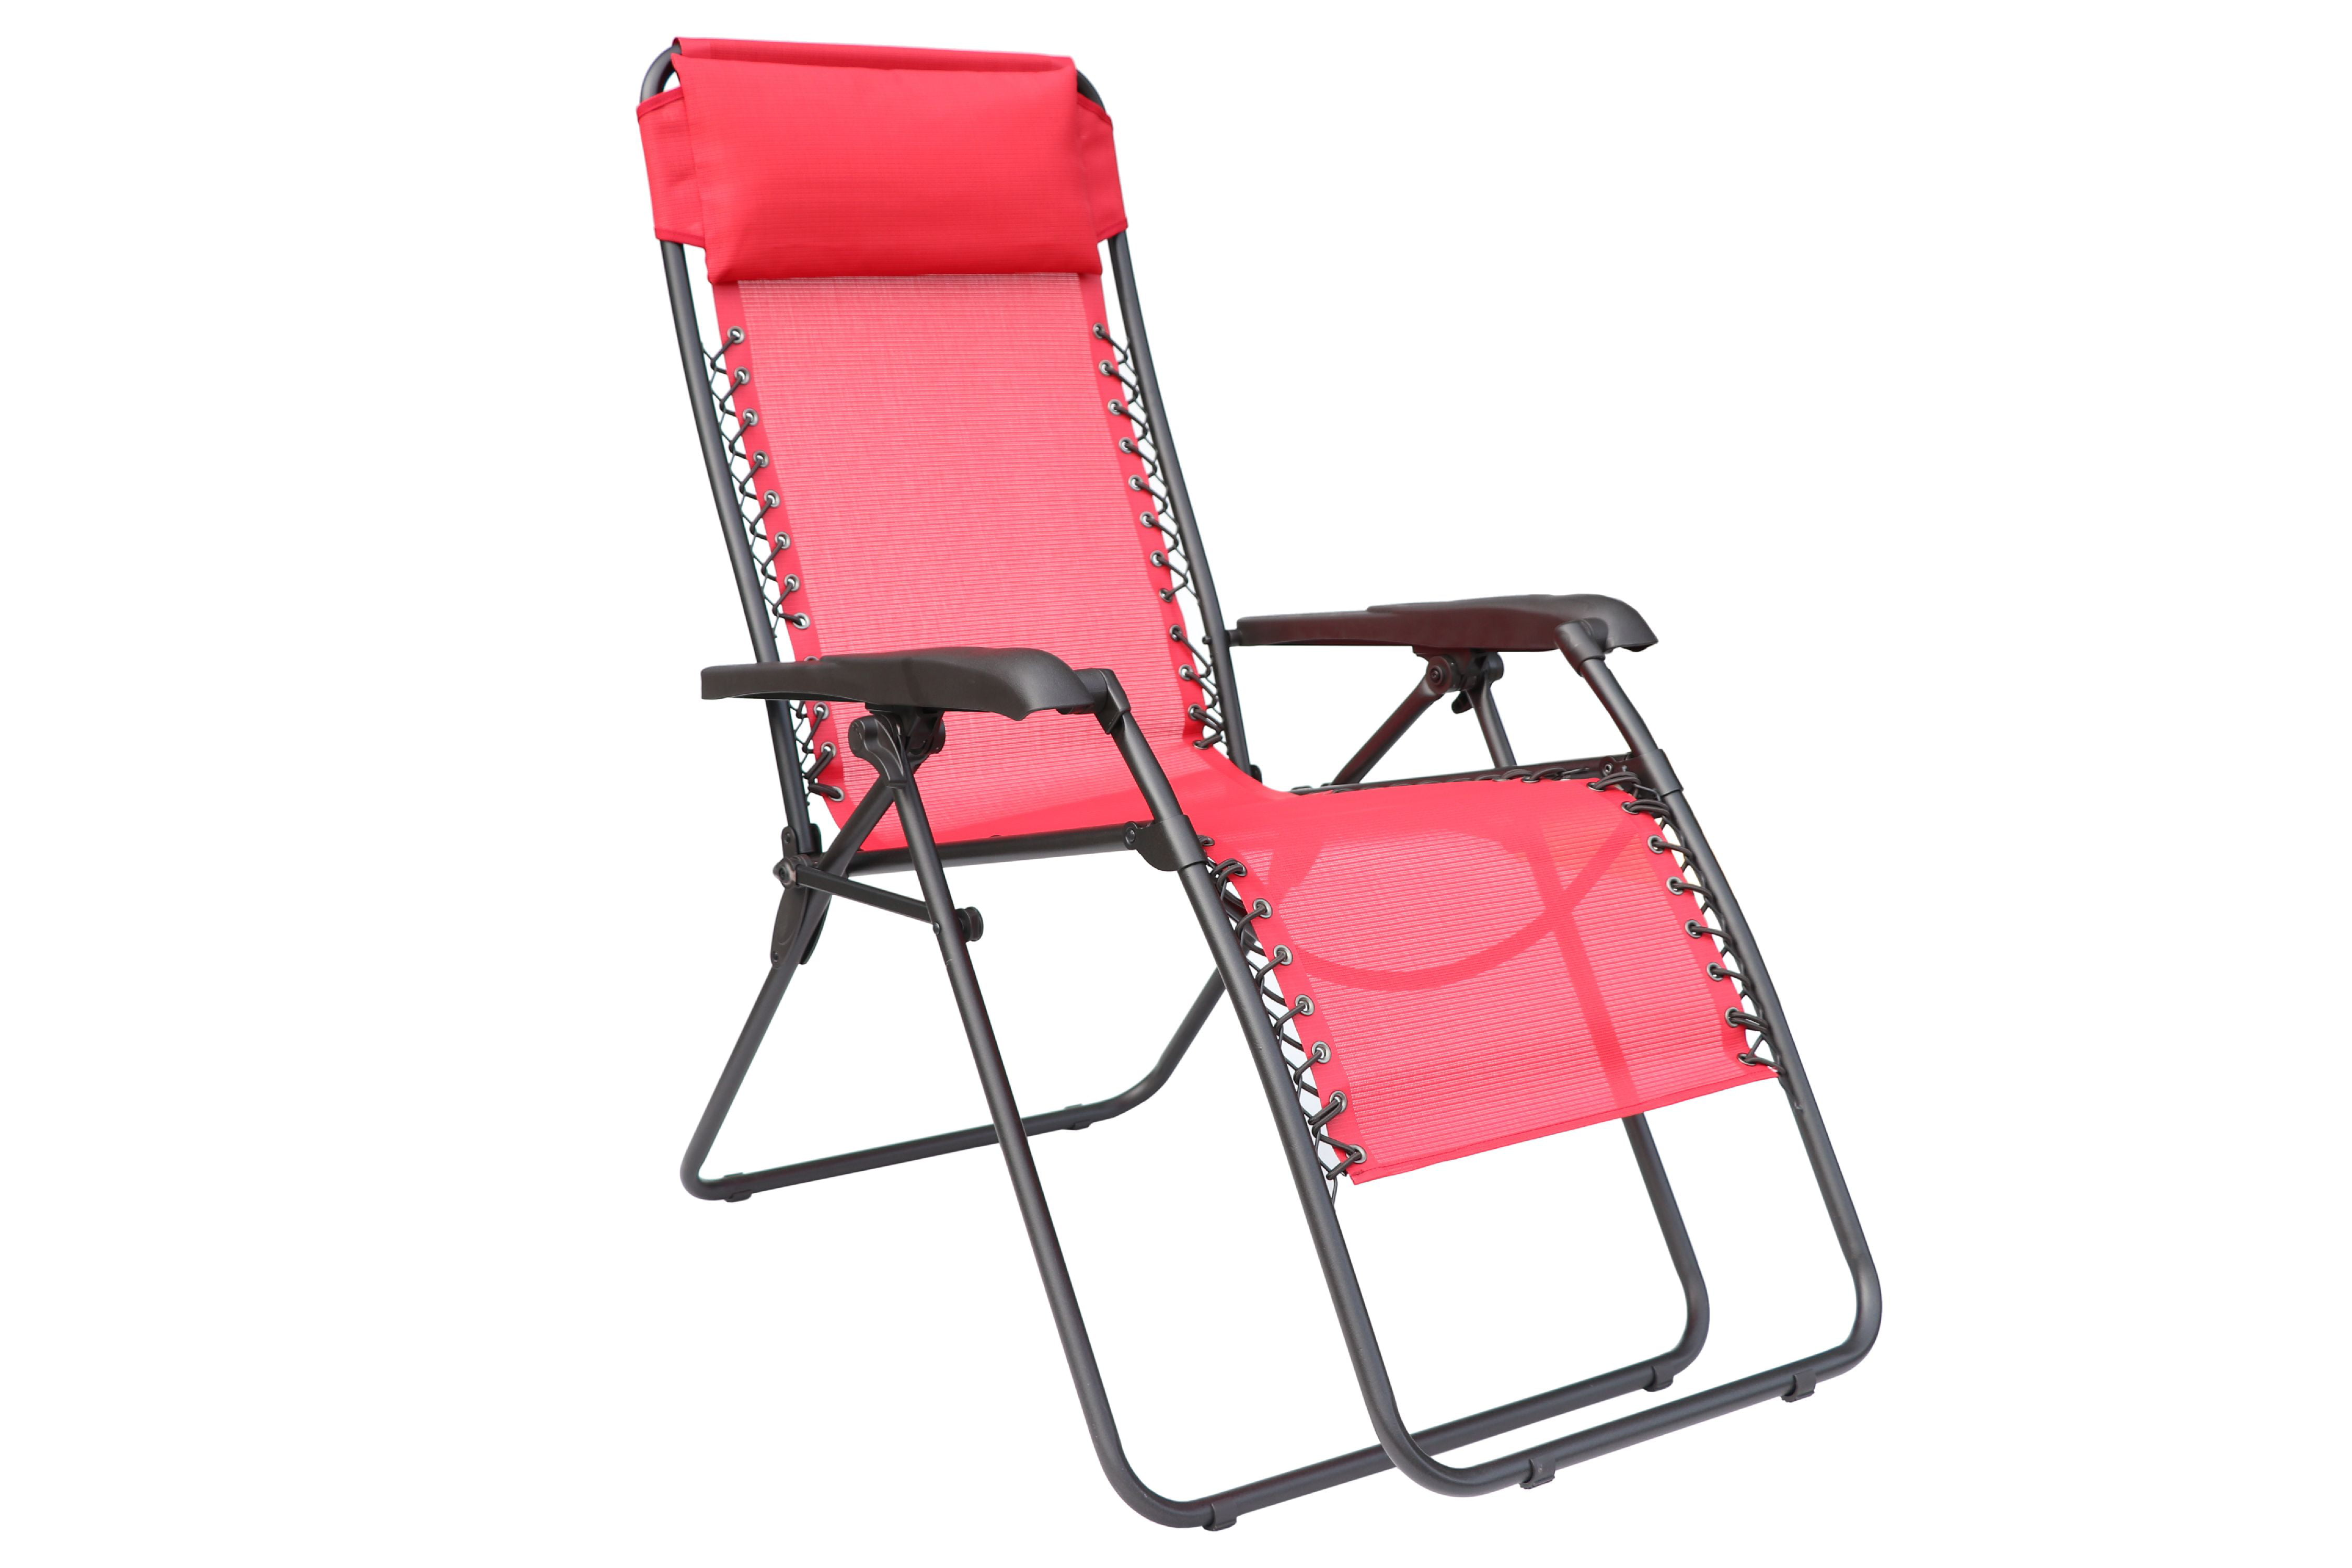 Mainstays Outdoor Folding Bungee Lounger, Red Sling